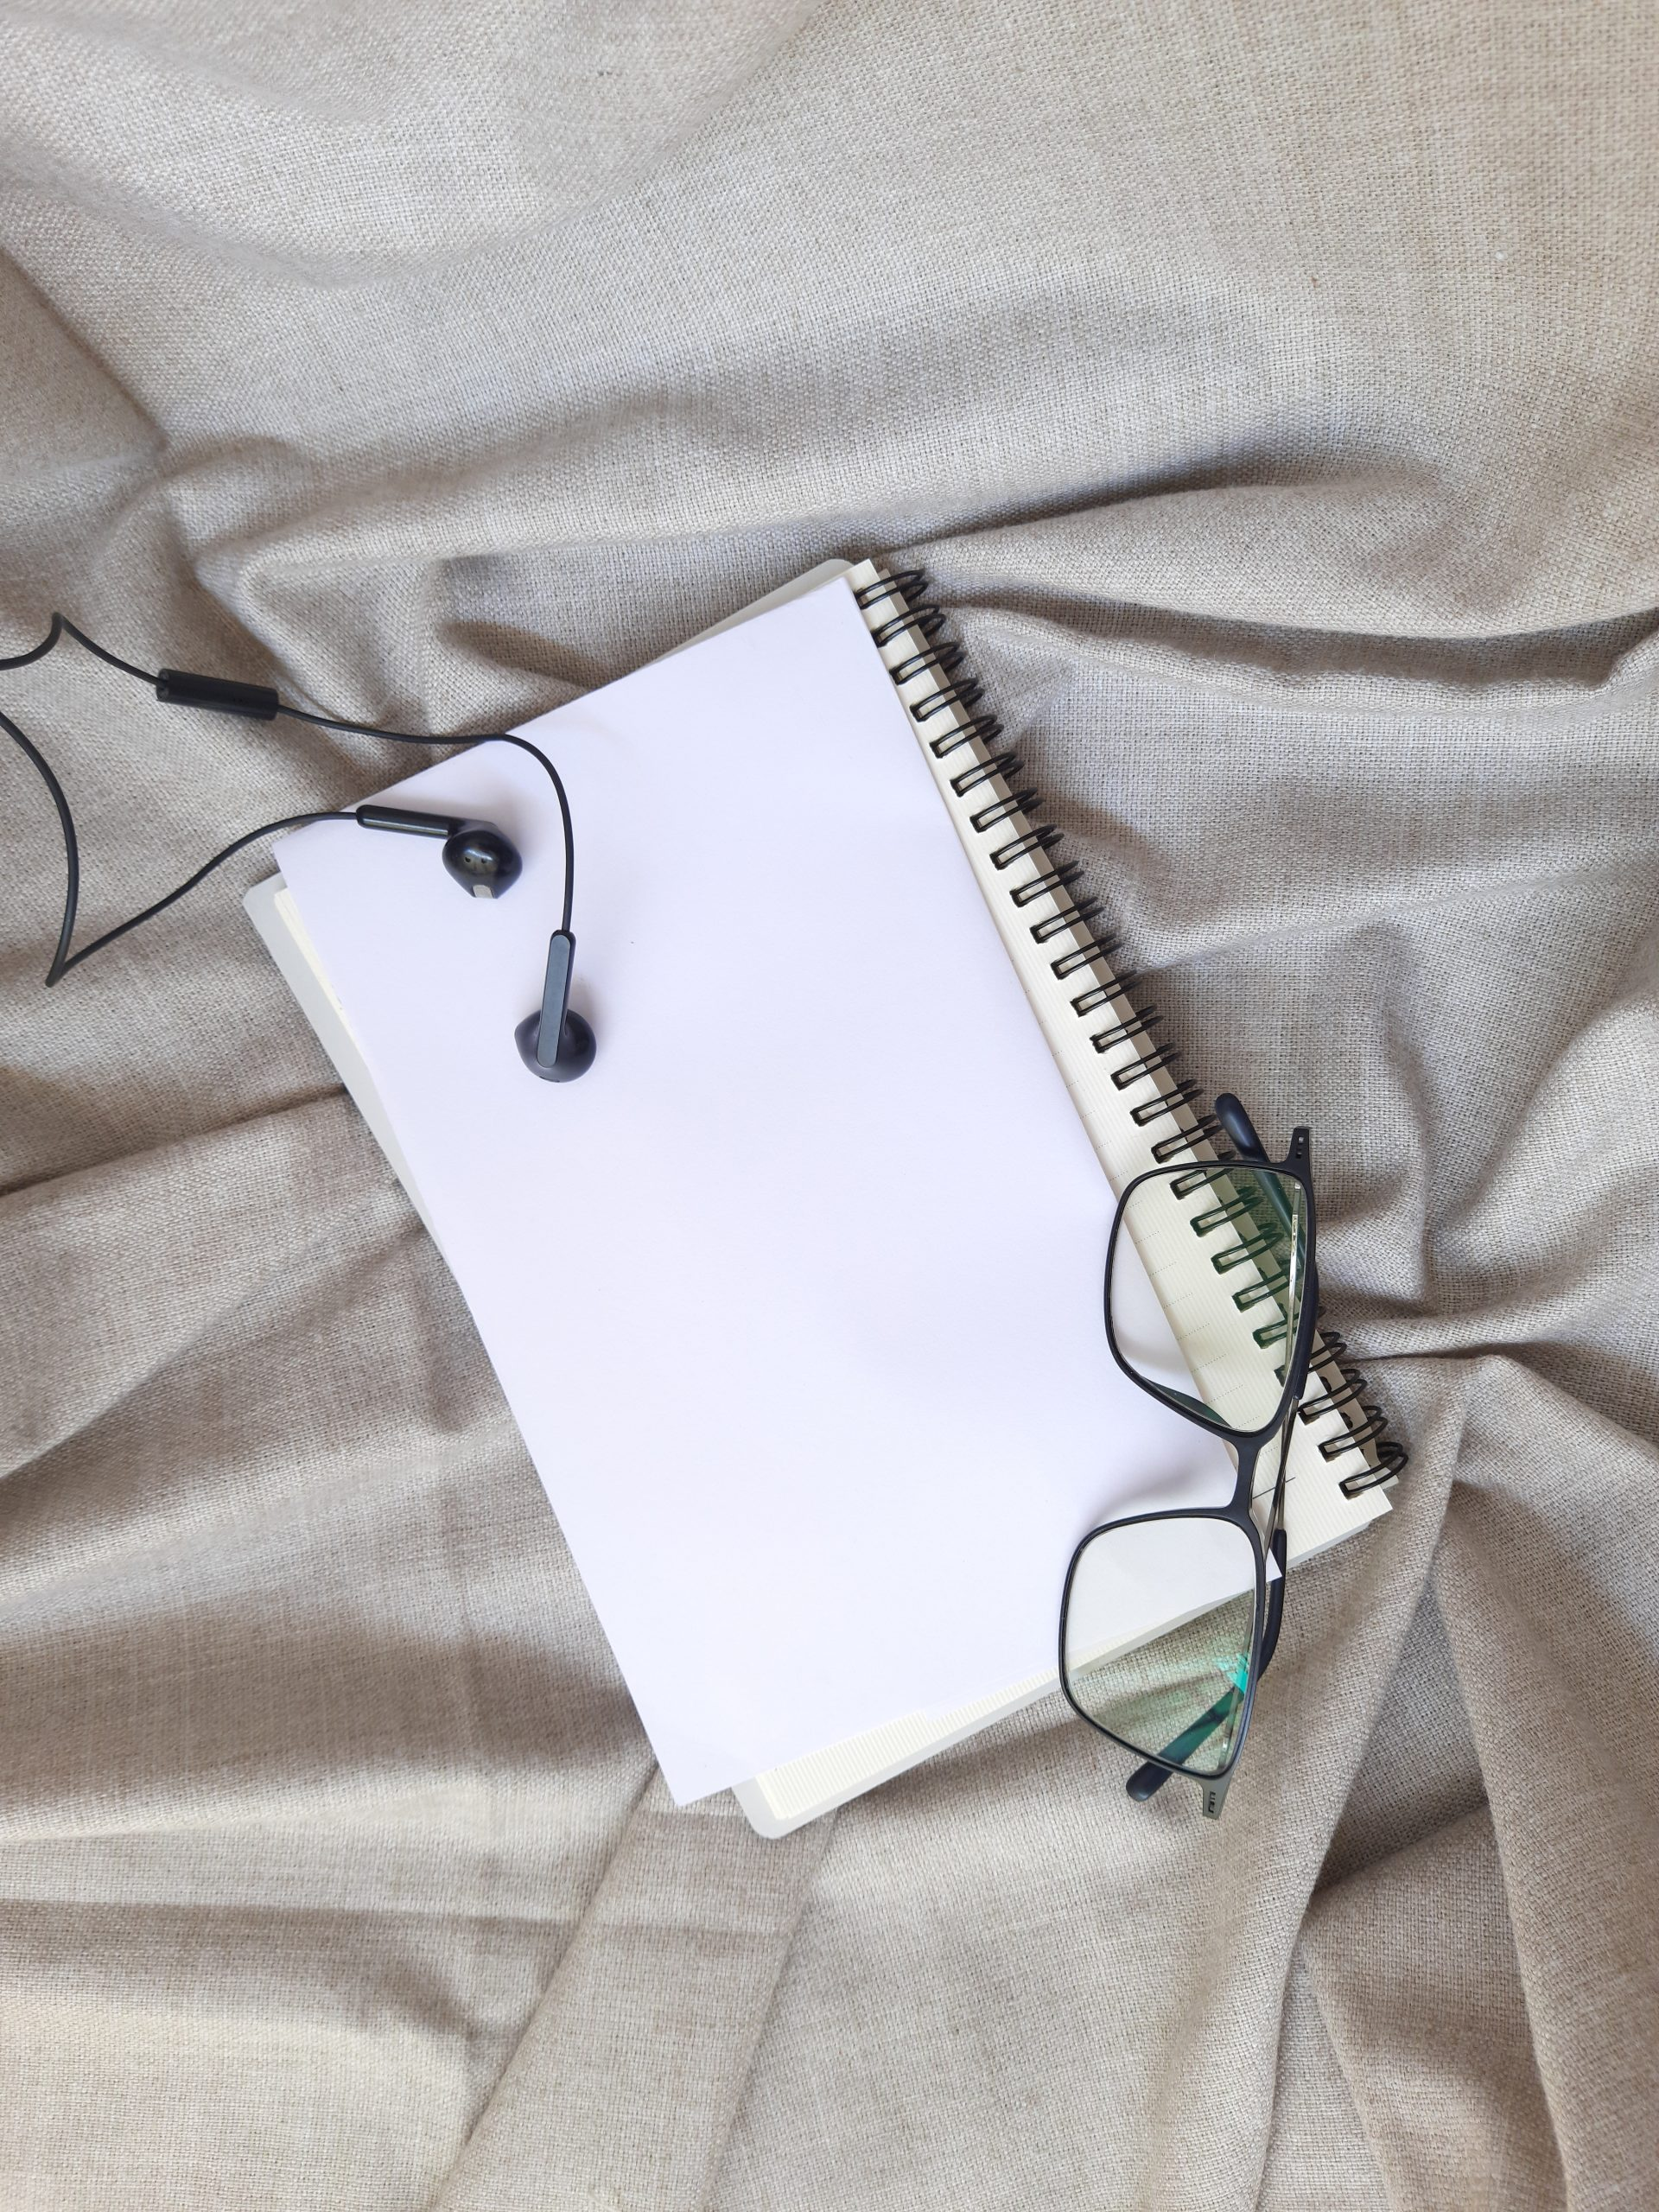 Diary and earphone on bed